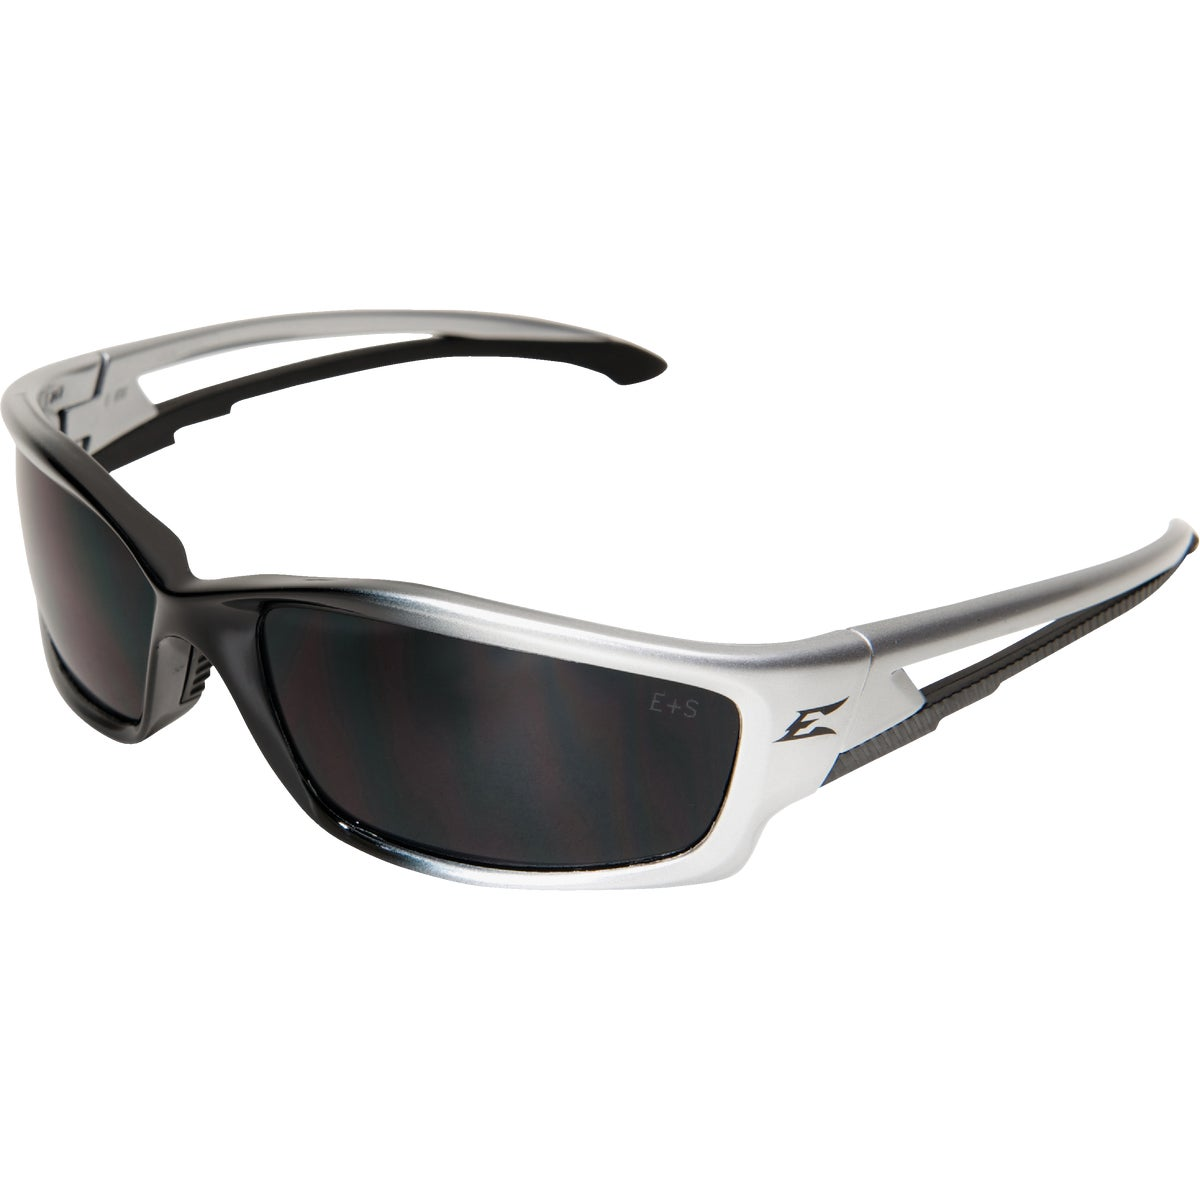 KAZBEK BLACK/SMOKE LENS - SK116 by Edge Eyewear